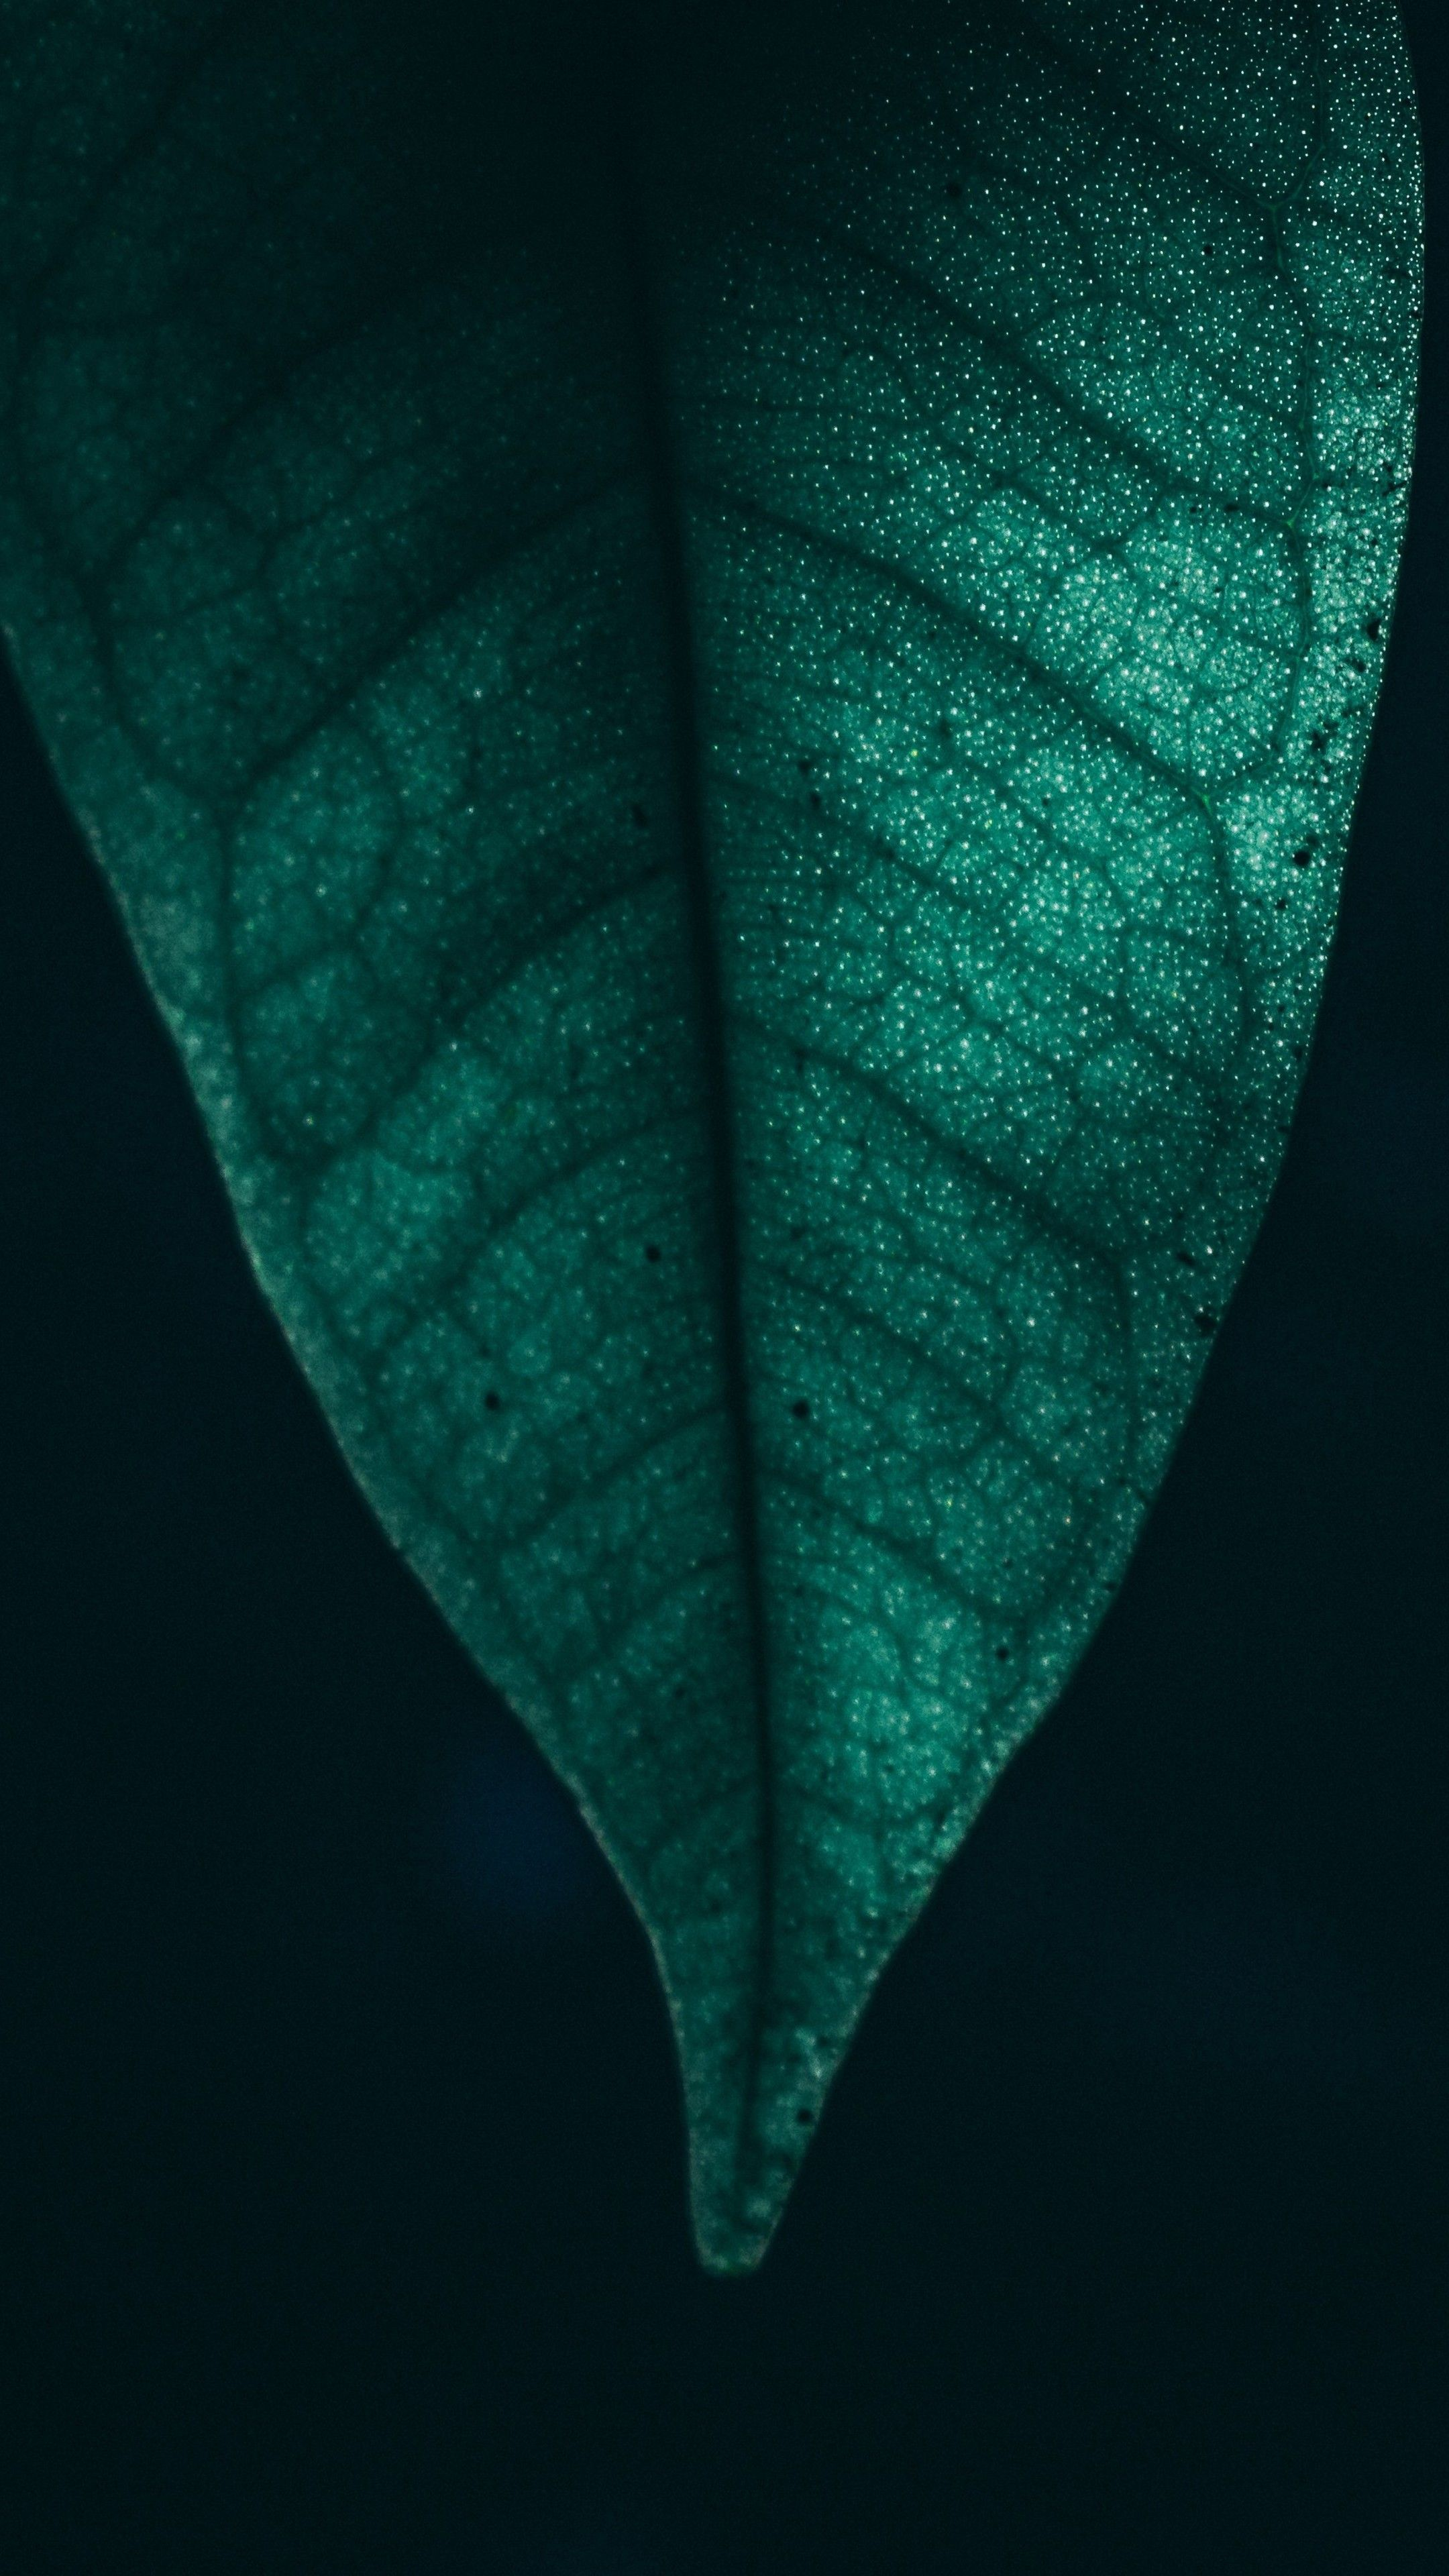 Nature Green Leaf Macro 4k Wallpapers Hd 4k Background For Android Wa Whatsapp Wallpaper 4k Wallpaper Android Fondos De Pantallla